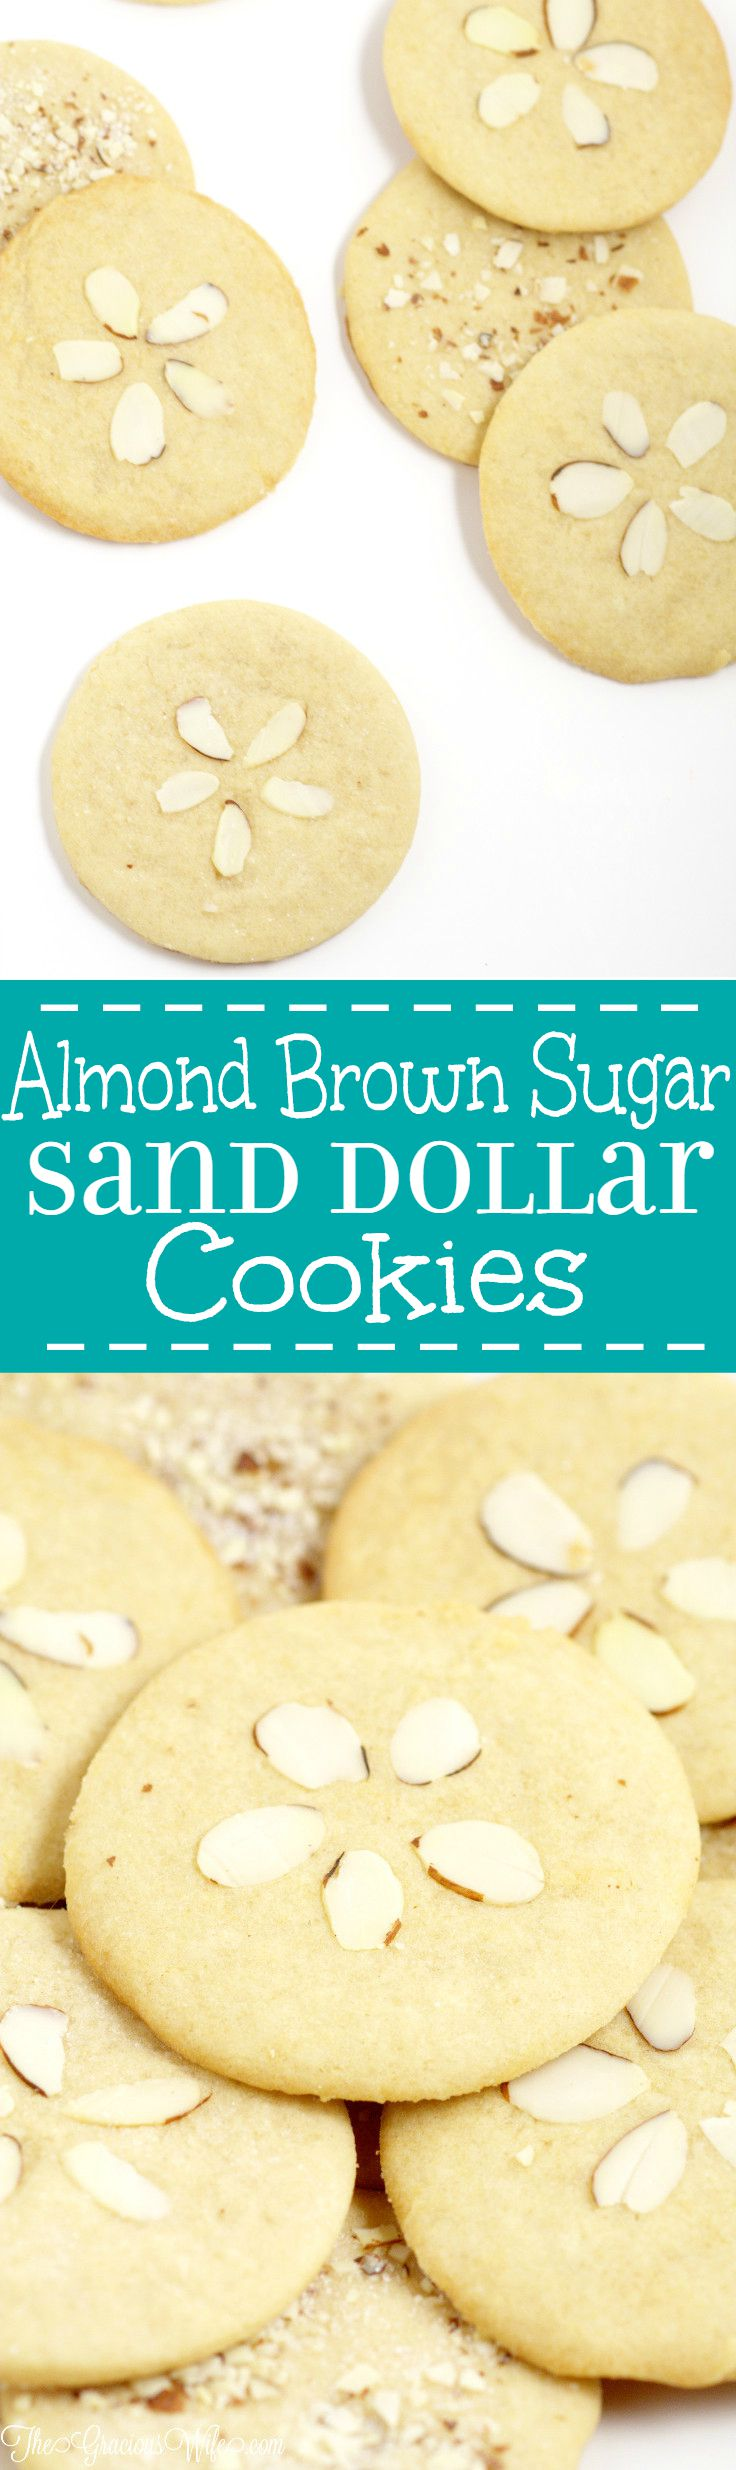 Almond Brown Sugar Sand Dollar Cookies Recipe - an easy cookies recipe from scratch. These are just like sugar cookies, only better!